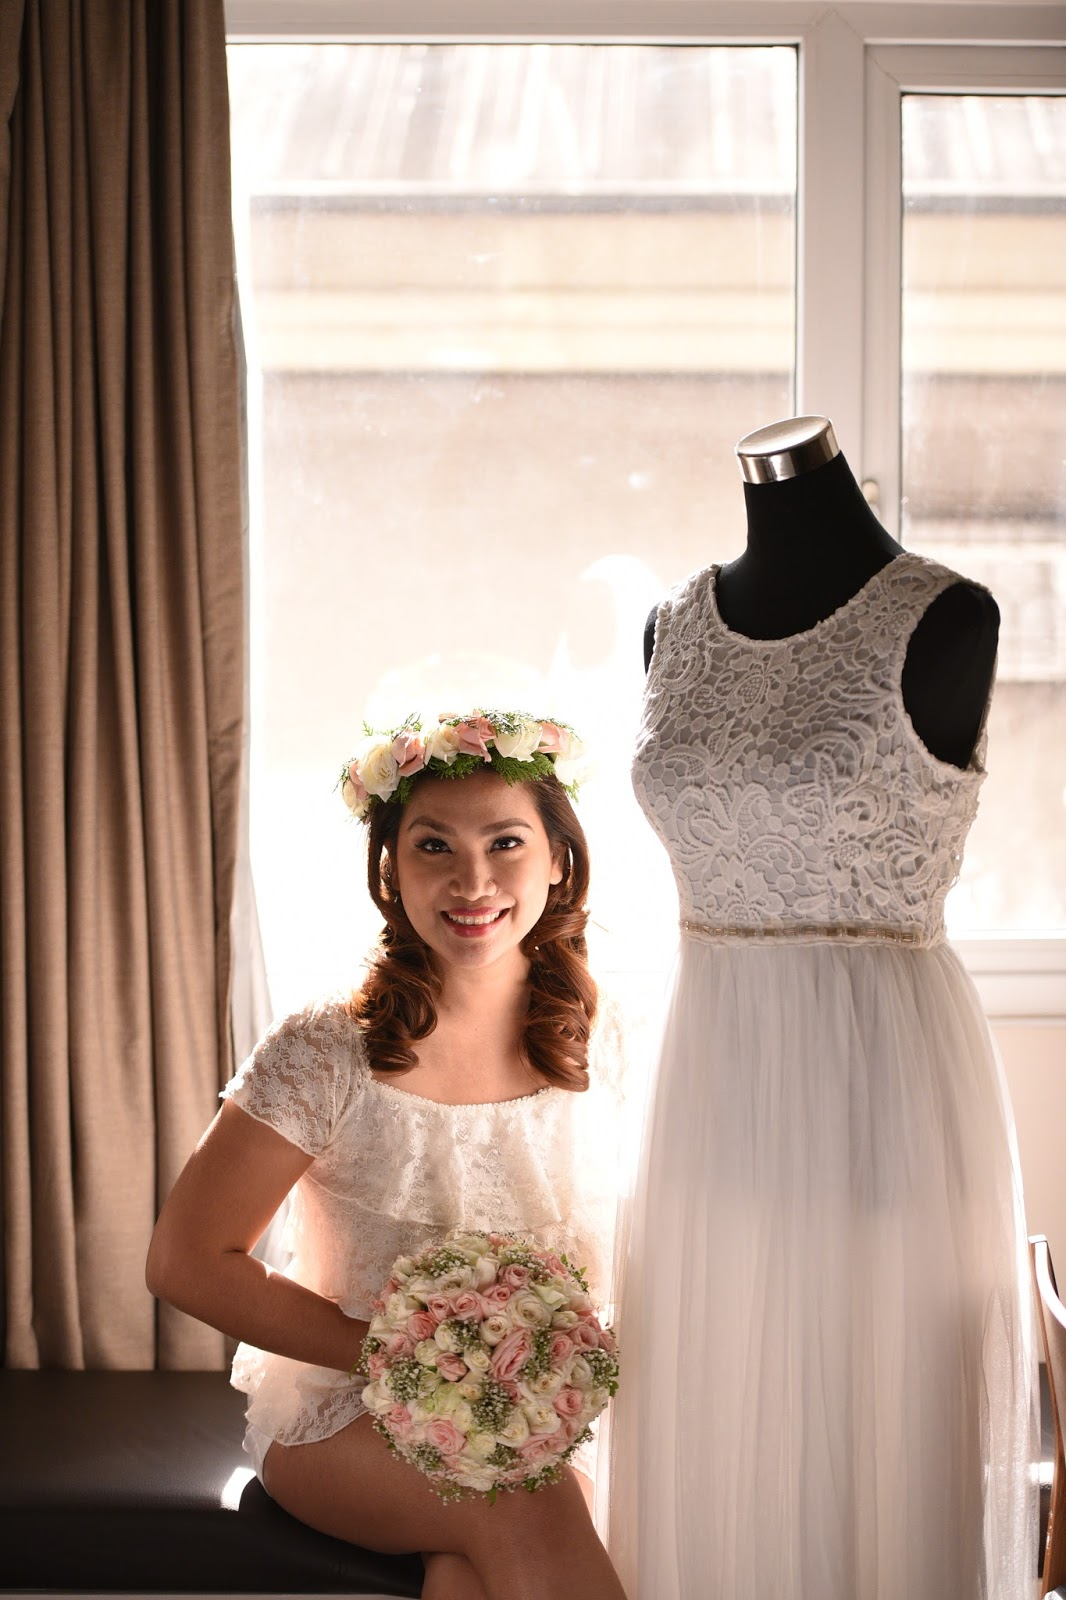 My RTW Wedding Gown Search And Finding The One - Mommy Practicality